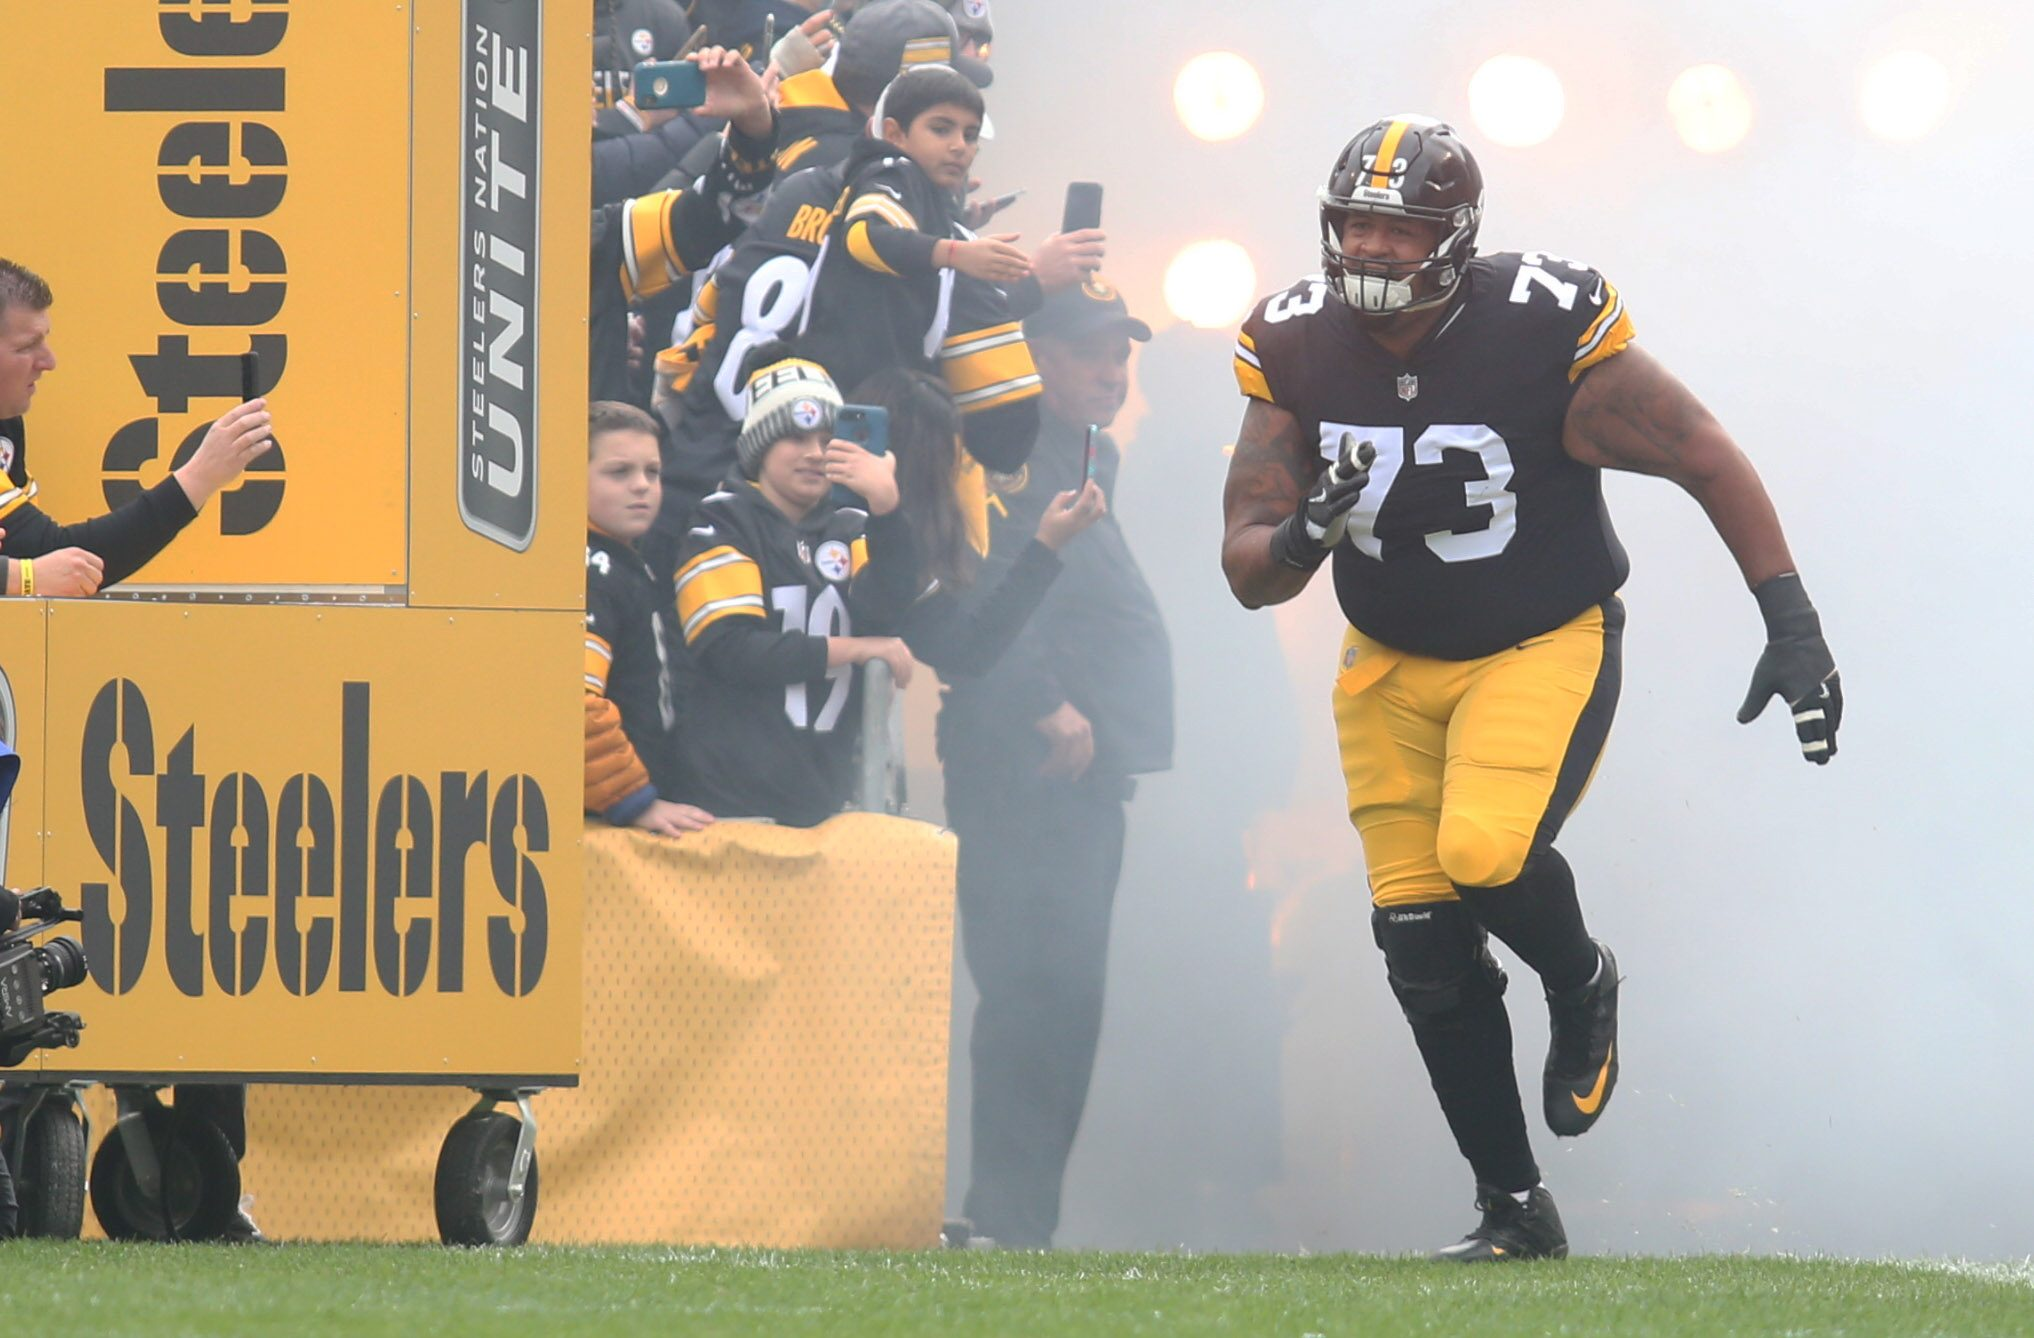 Steelers Guard Ramon Foster Retires from NFL